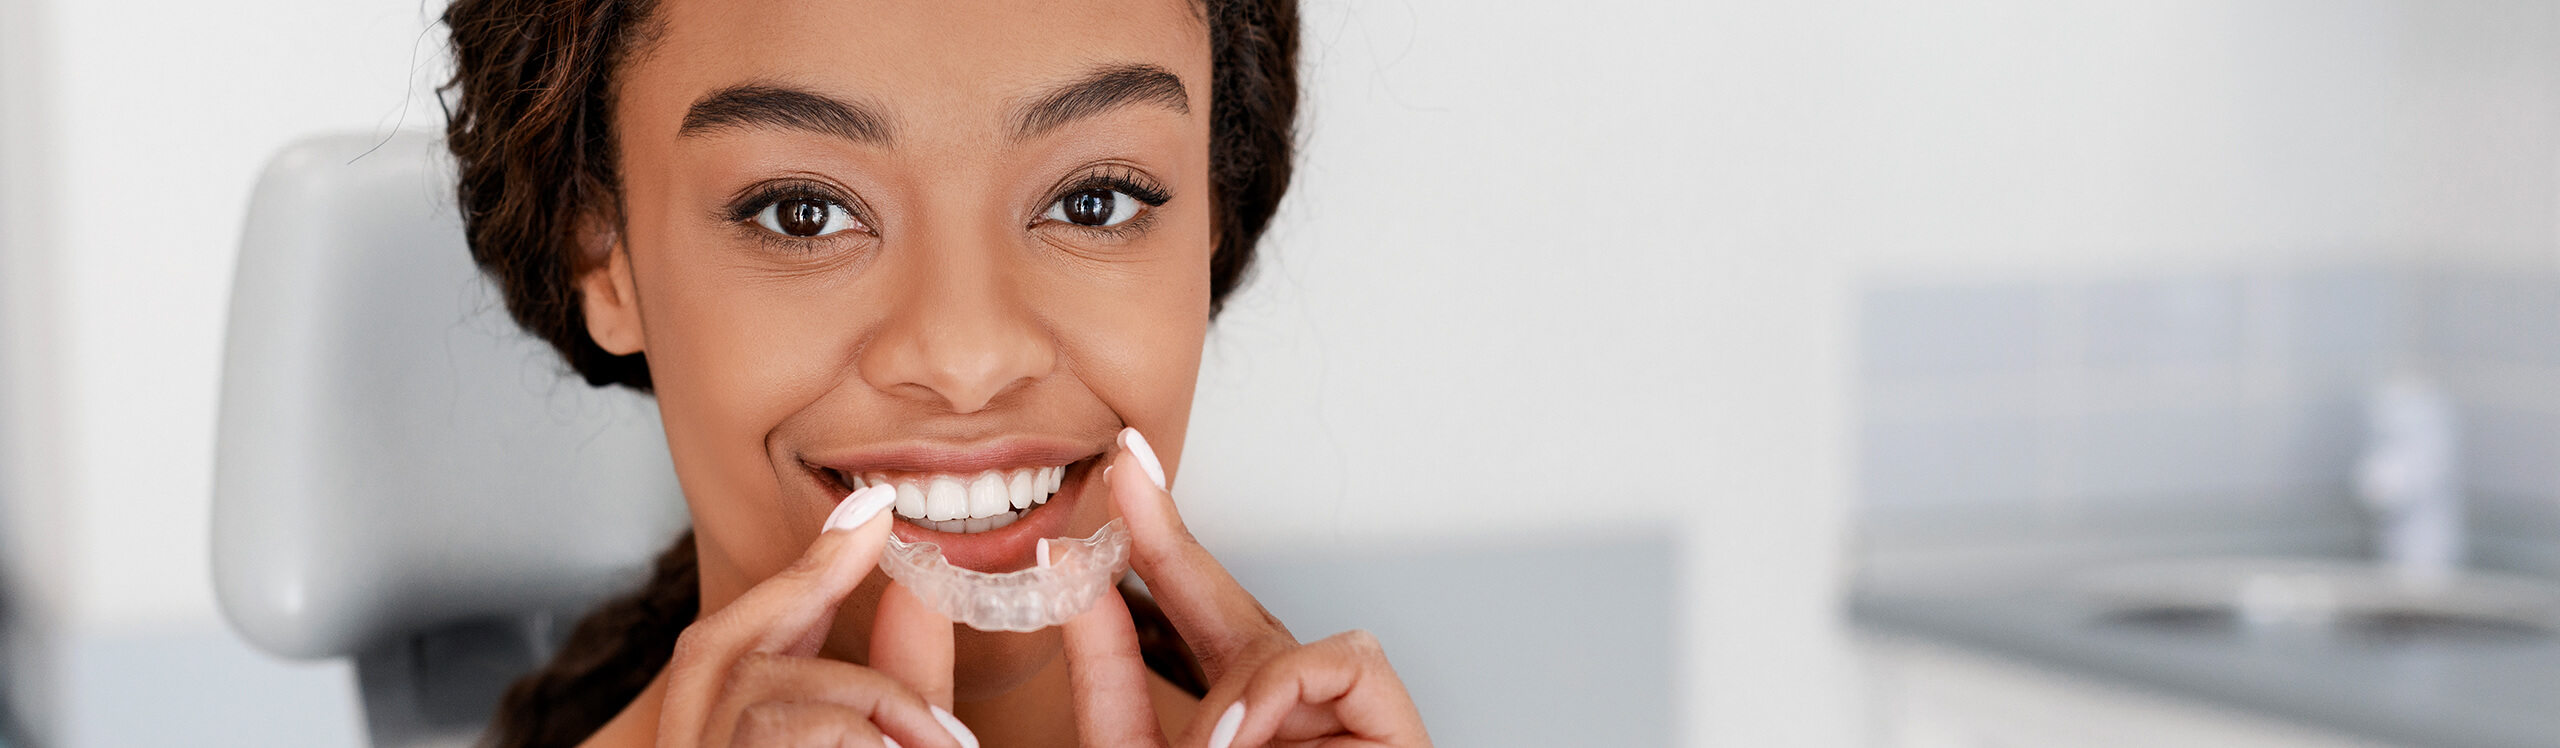 smiling woman putting clear aligners on her teeth